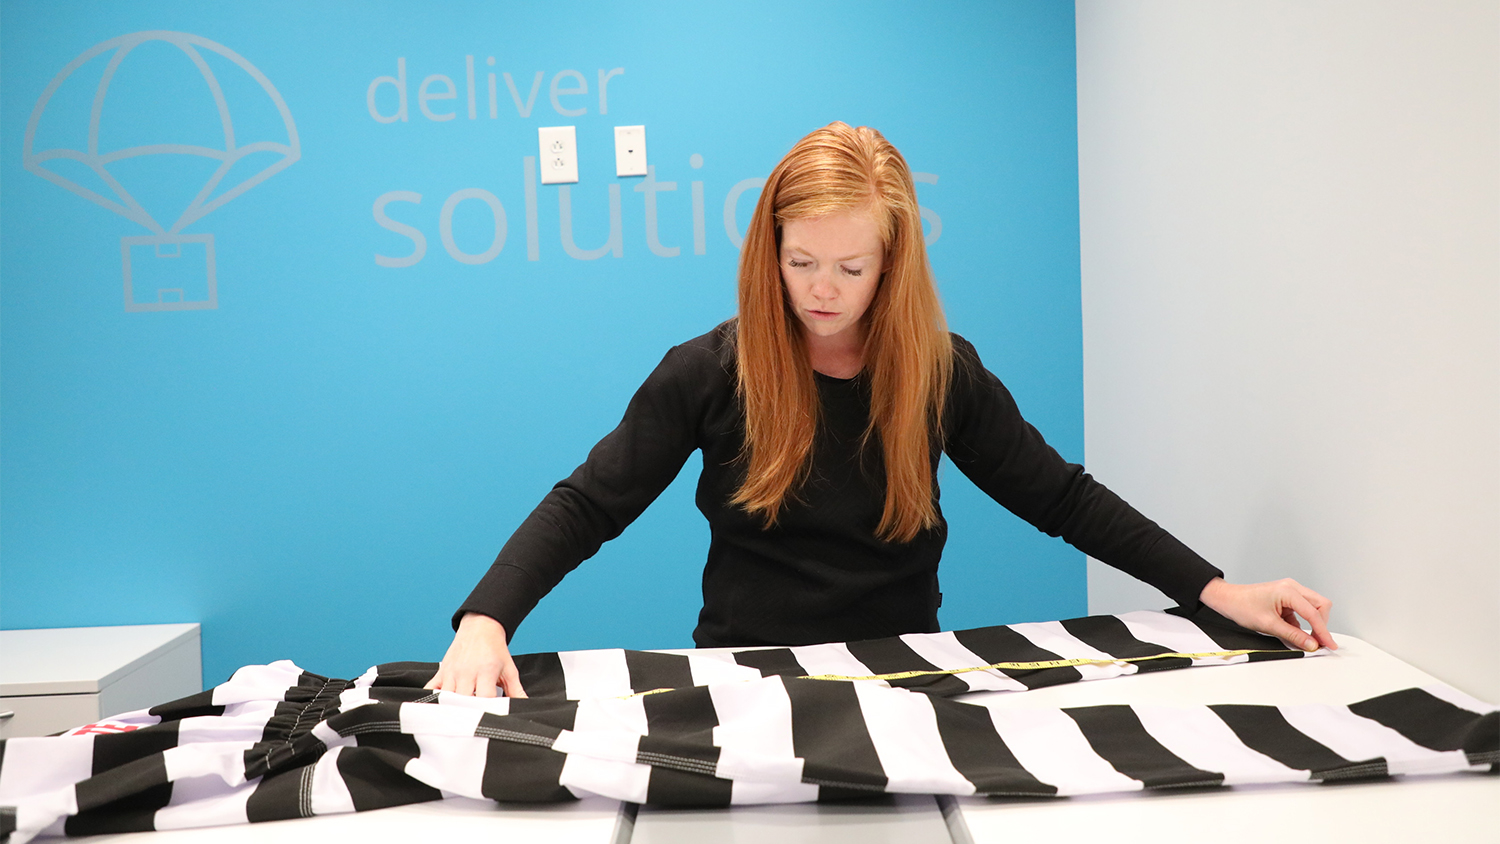 Lonny Carter measures fabric on a desk. The fabric is black and white striped.